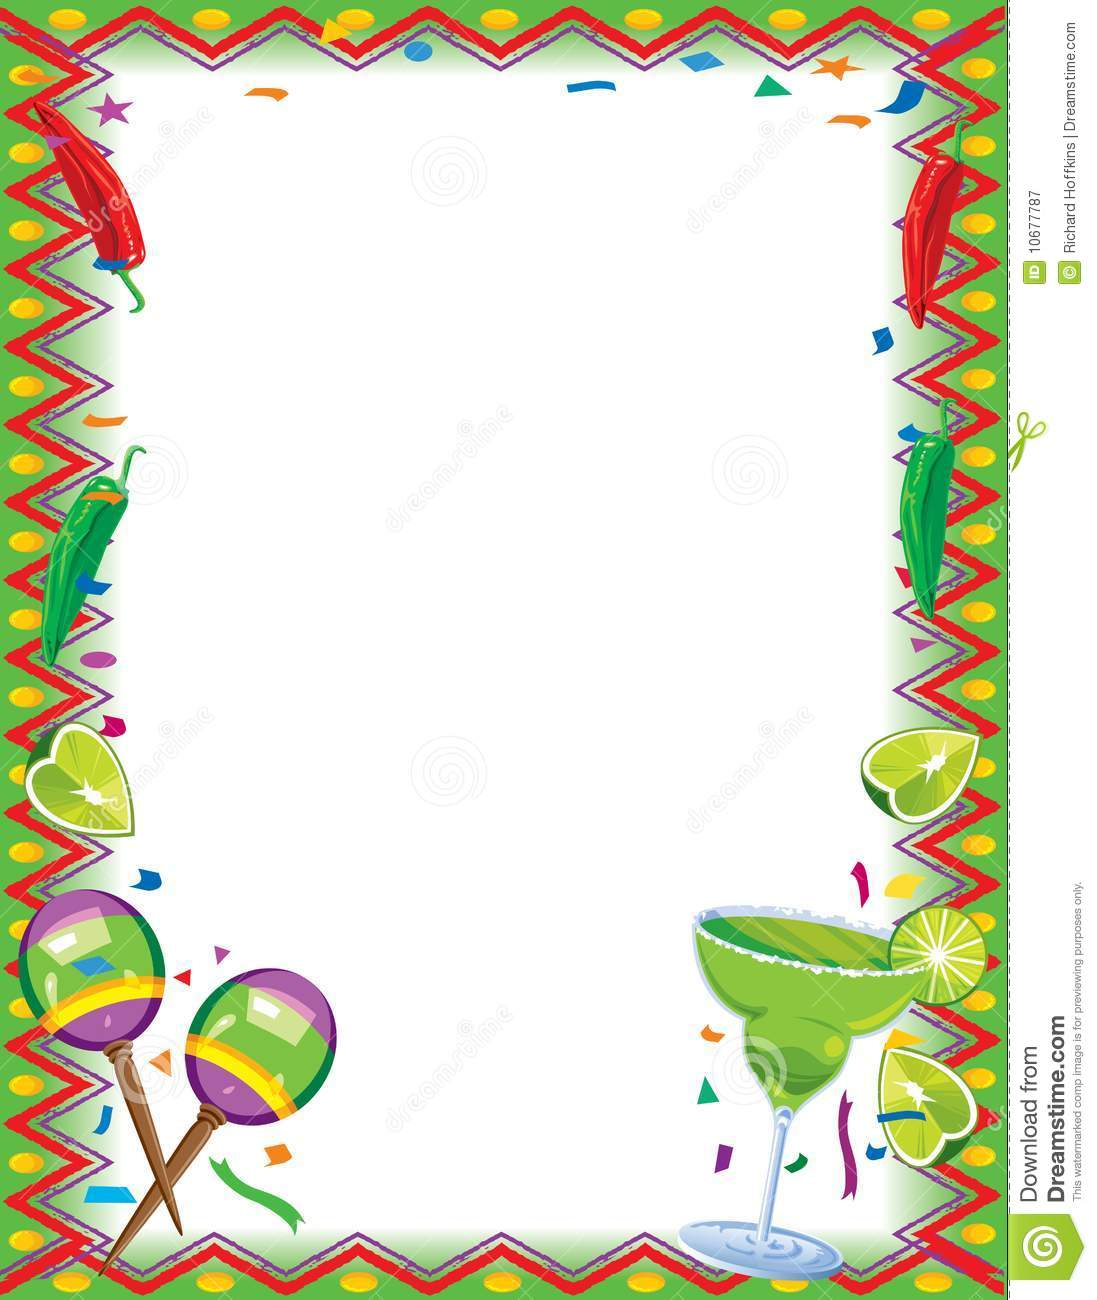 Royalty Free Stock Photography: Fiesta Border. Image: 10677787